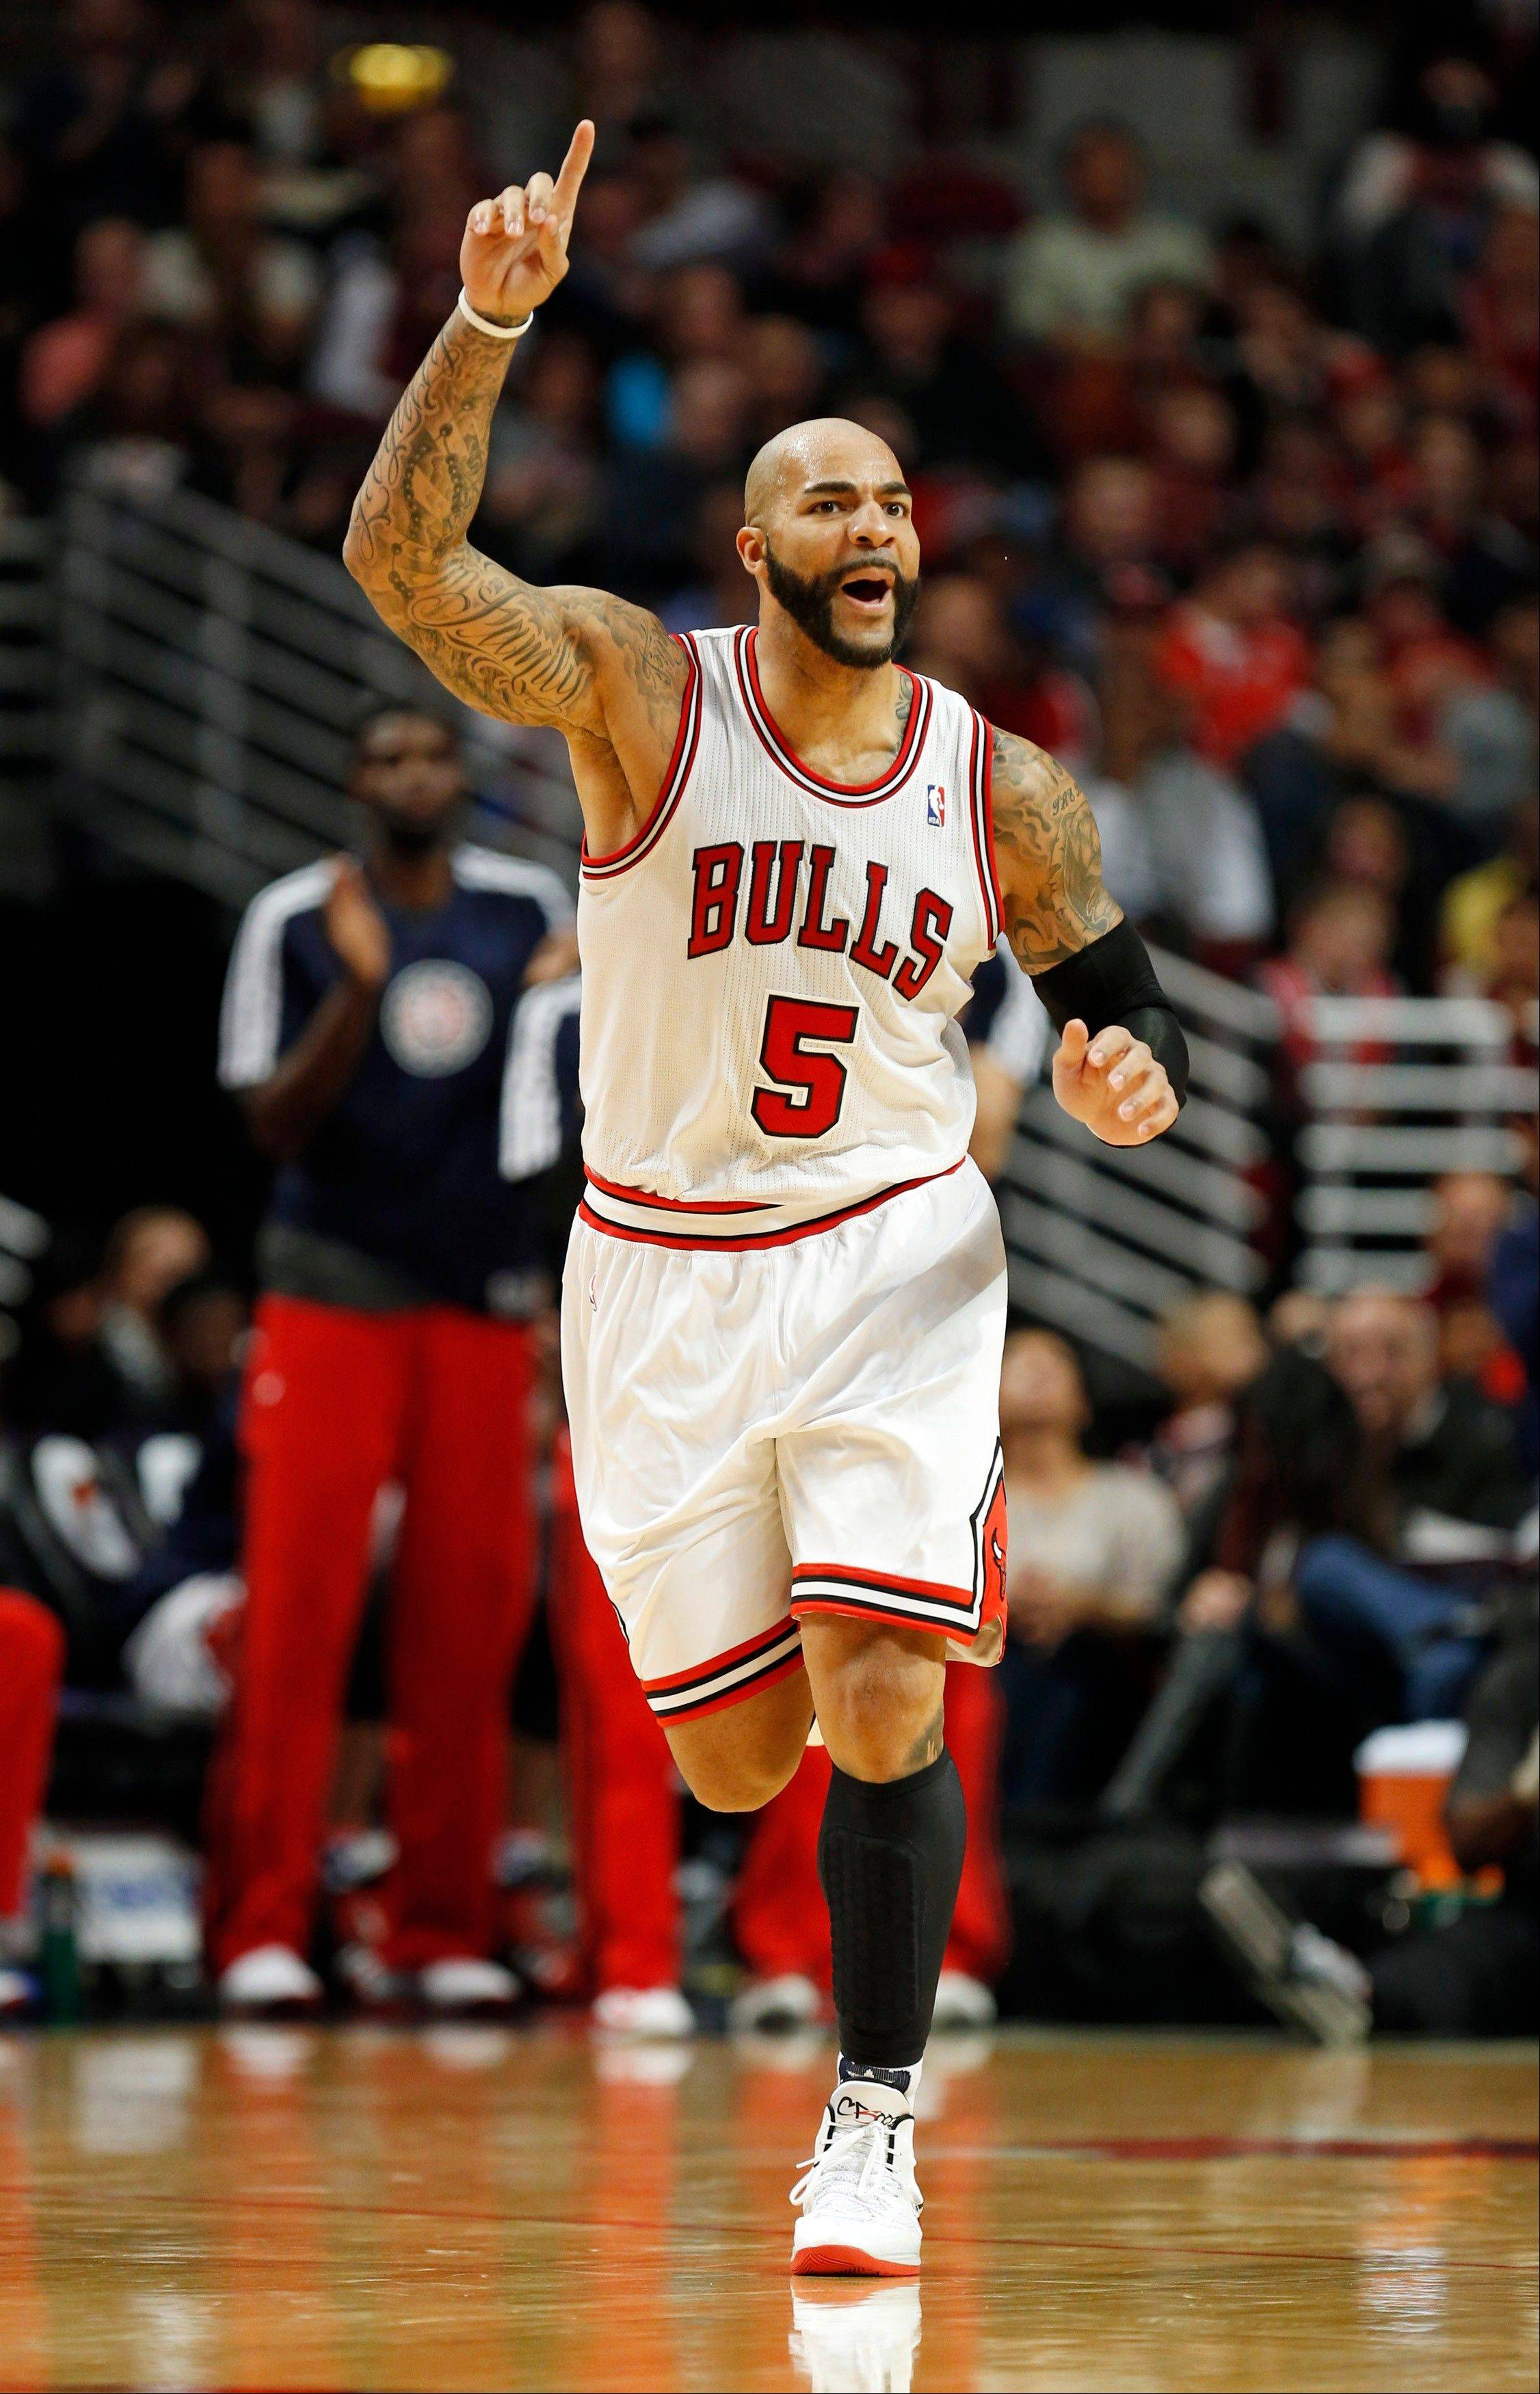 Carlos Boozer is averaging a team-high 18.2 points per game and is shooting .597 from the field.